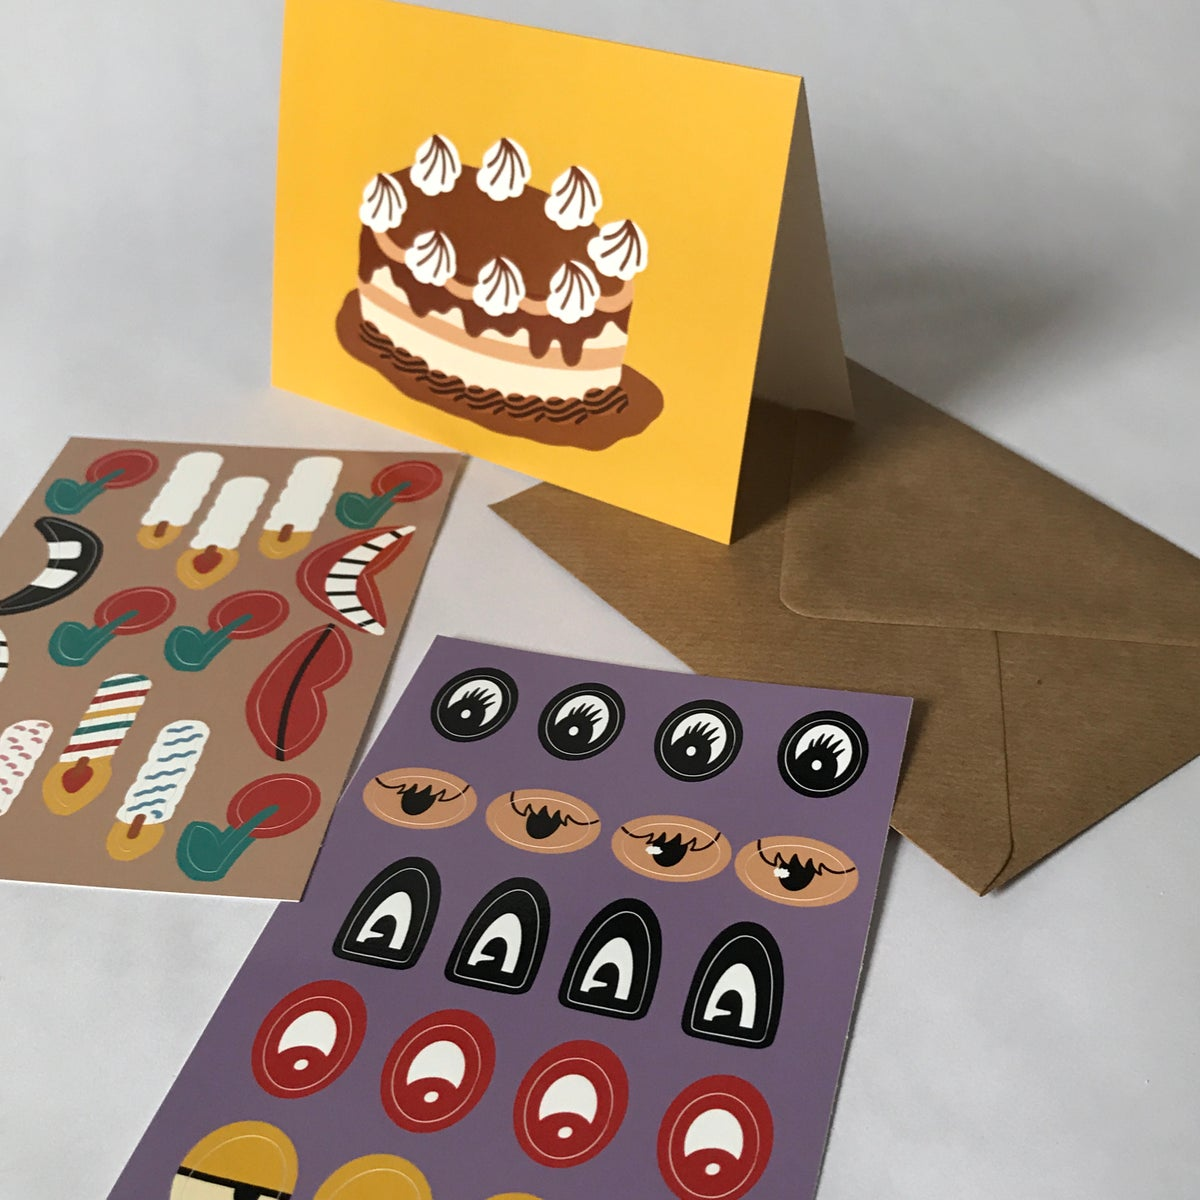 Image of D.I.Y. CAKE CARD WITH STICKER PACK!